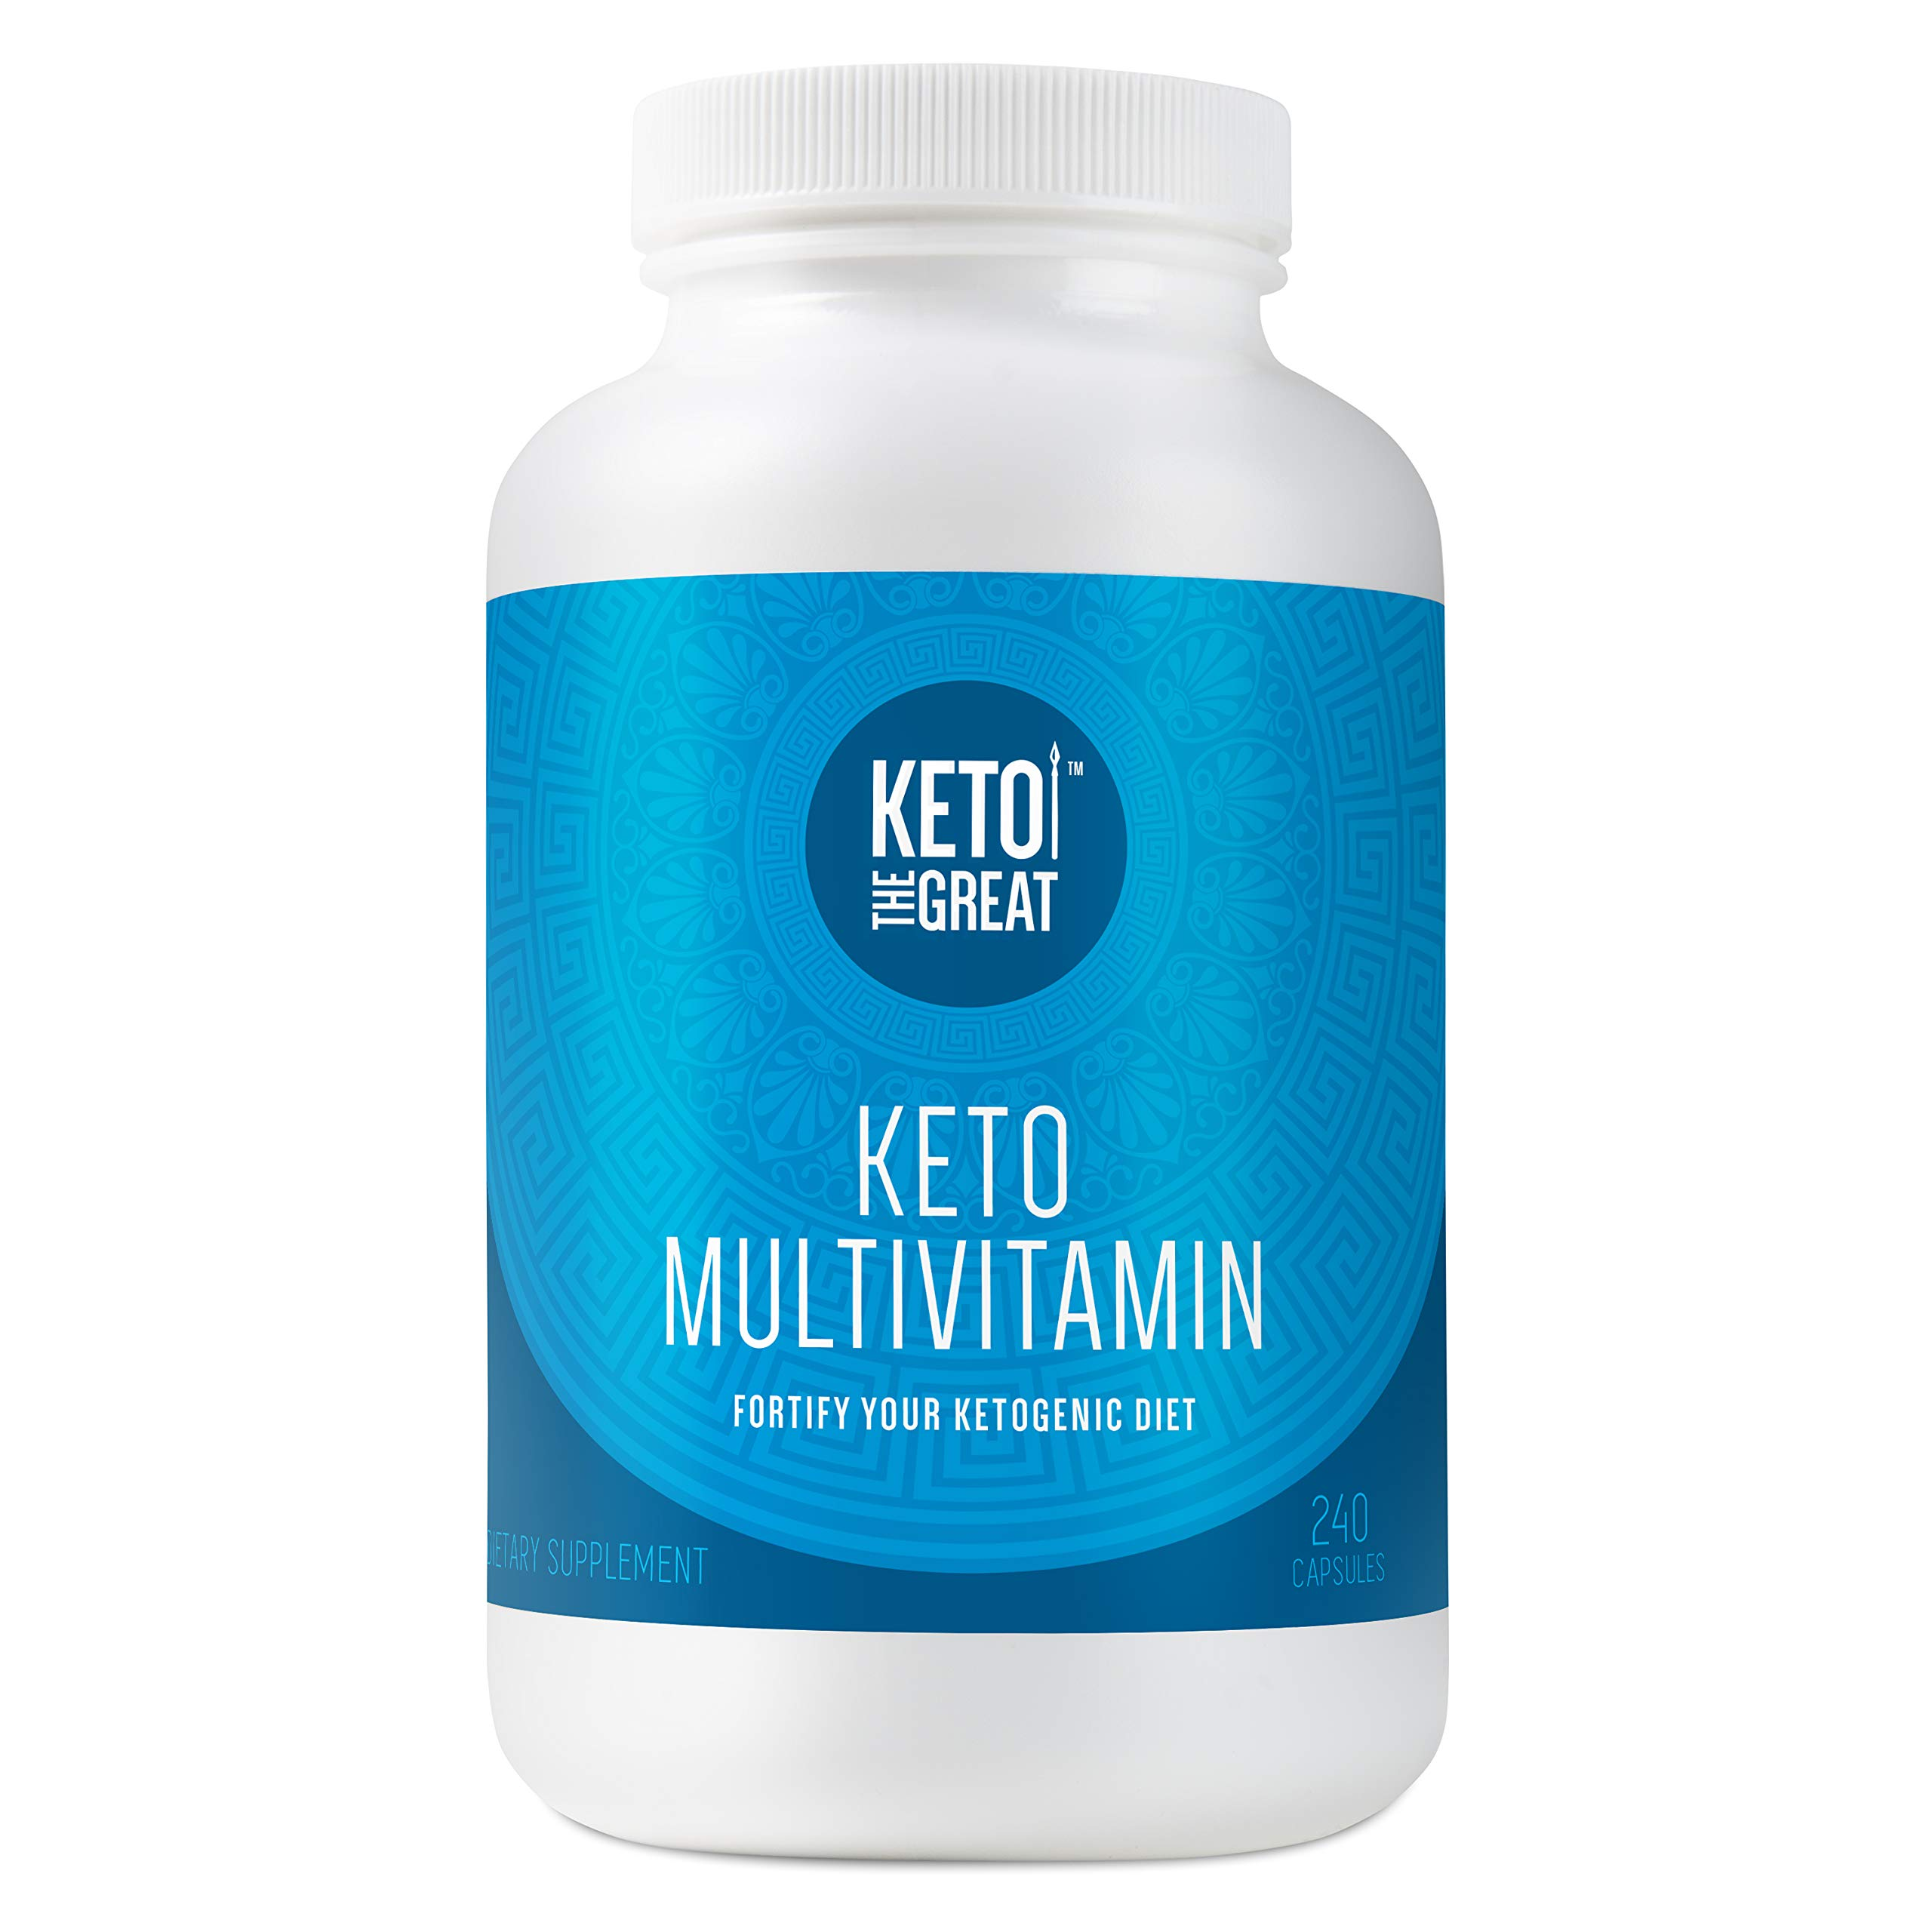 Keto the Great - Keto Multivitamin for Men and Women - Daily Vitamin and Mineral Supplement Pills for Ketogenic Diet - with Key Vitamins, Electrolytes, MCT and BHB to Help Ketosis, 240 Capsules by Keto the Great